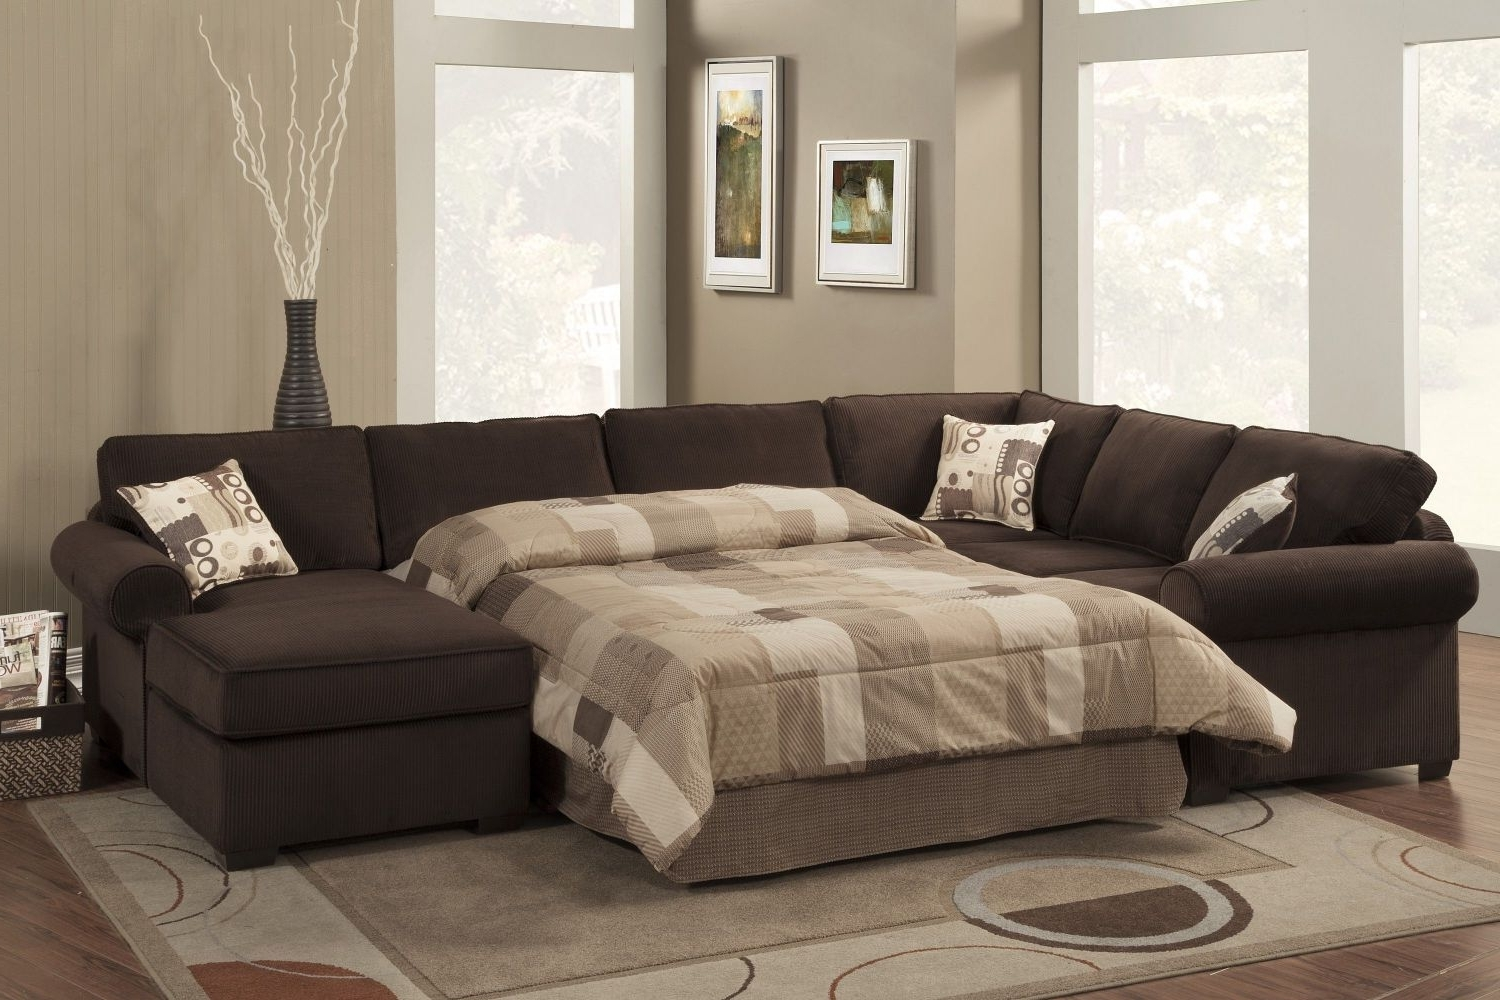 Unbelievable Reversible Sectional Sofa Chaise Together With Cheap within Latest Havertys Sectional Sofas